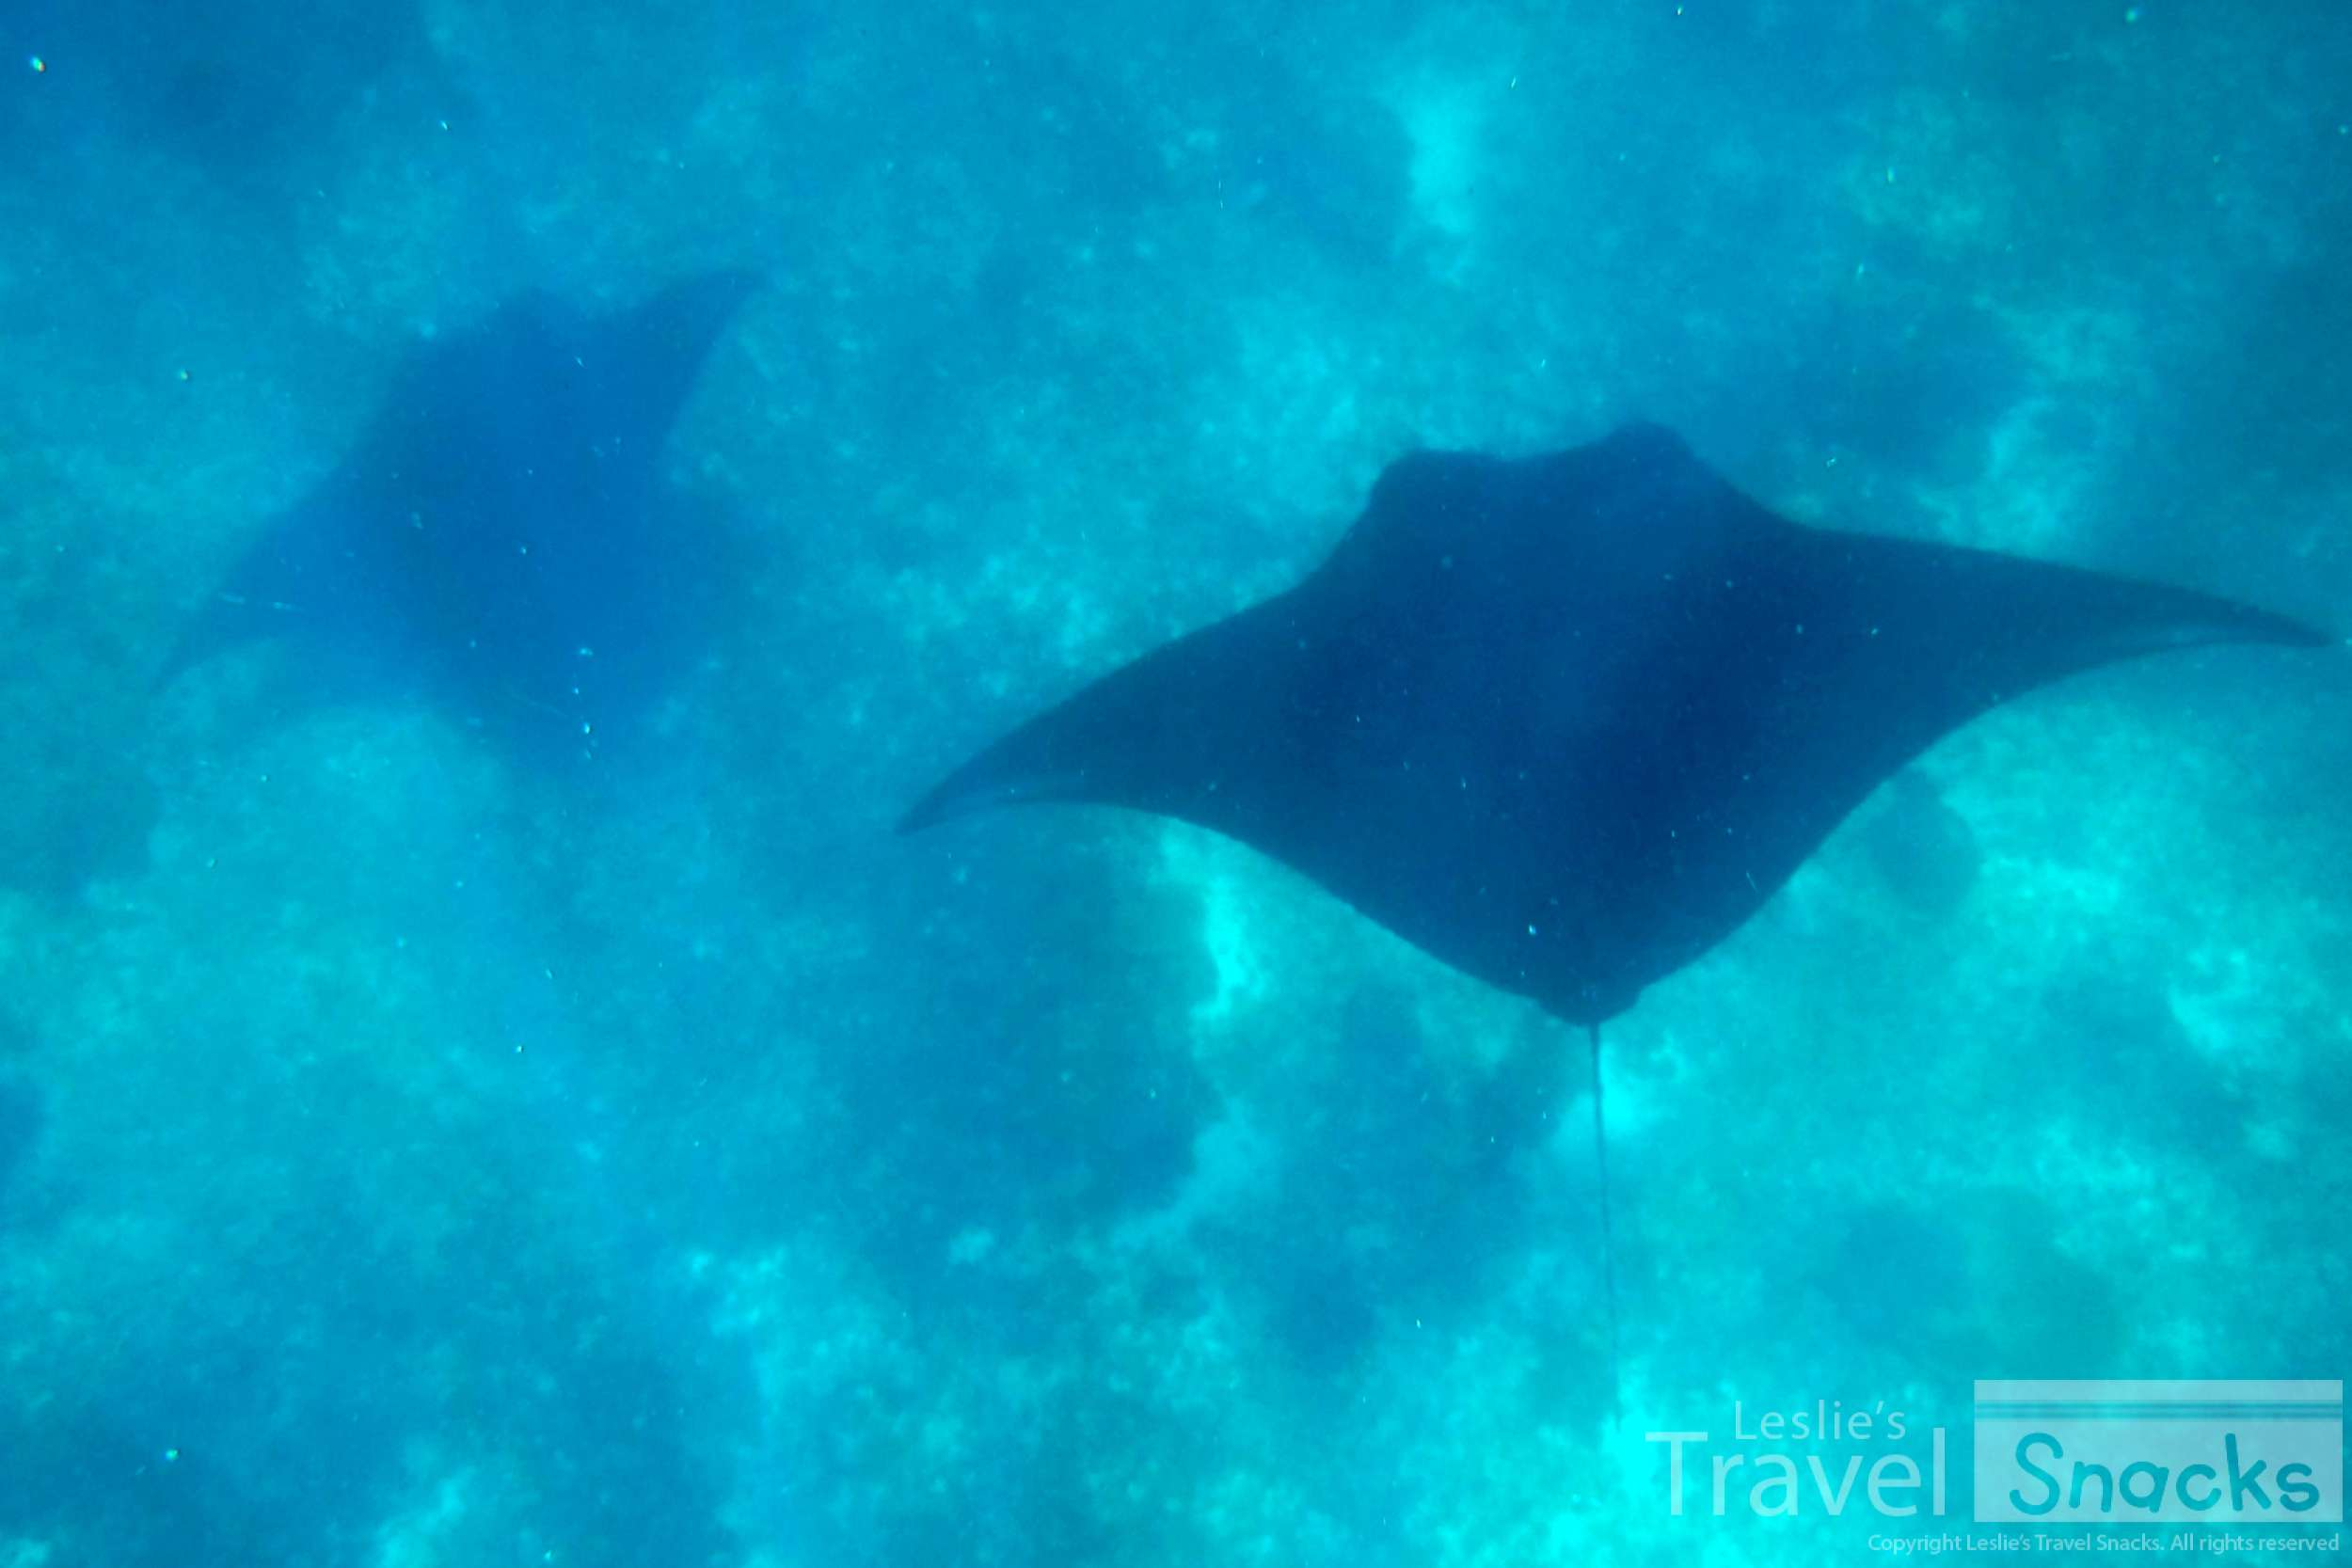 Not only giant lizards, but giant Manta Rays! This just rounded out the tour with amazingness.